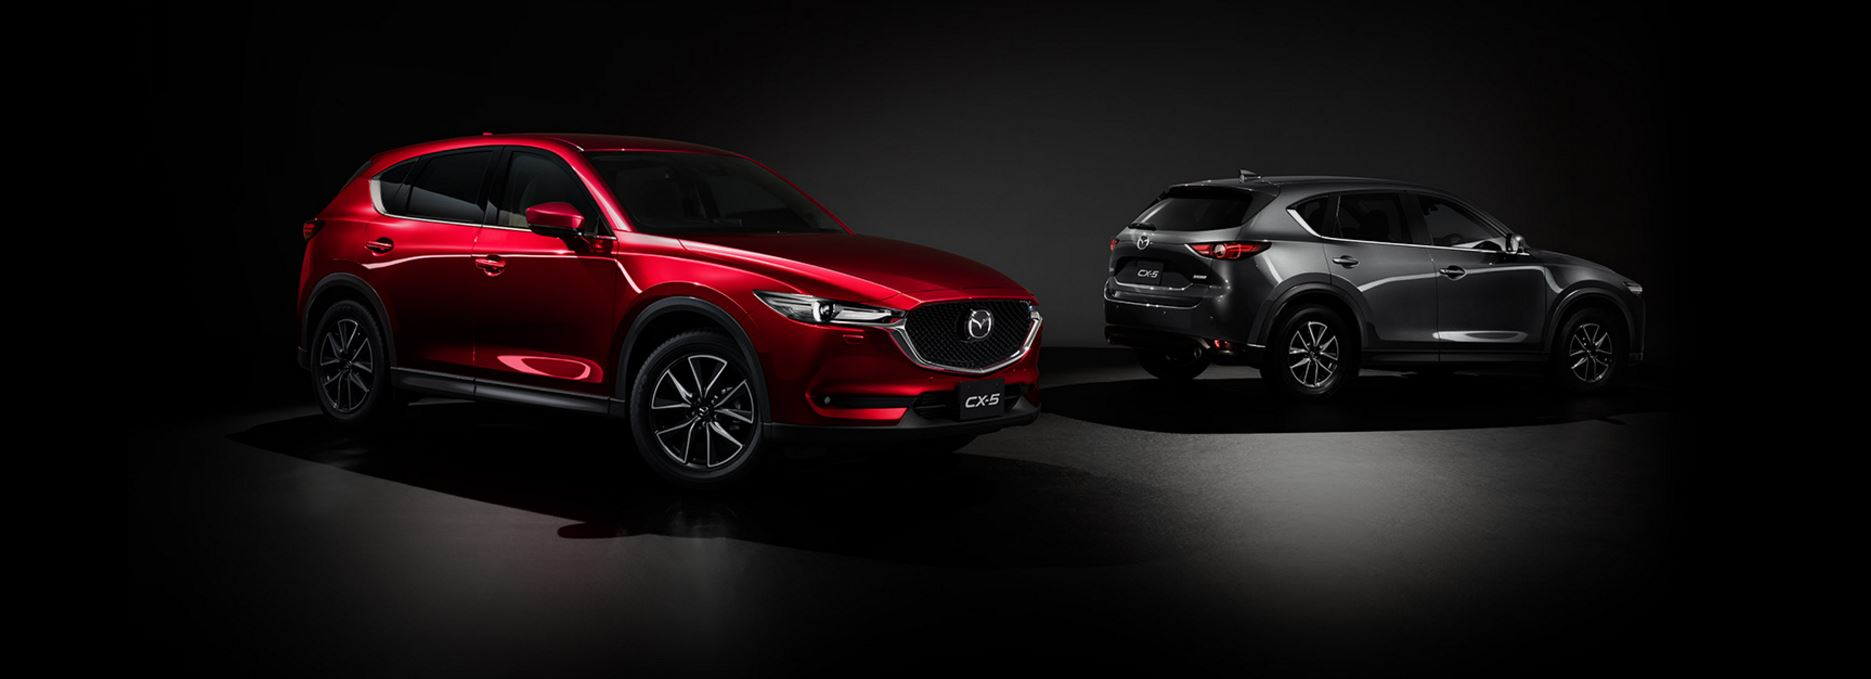 Mazda Fans Rejoice, The Wildly Popular Mazda CX 5 Is Being Followed Up By  Its Second Generation 2017 Mazda CX 5, Now Arriving On Dealership Lots.